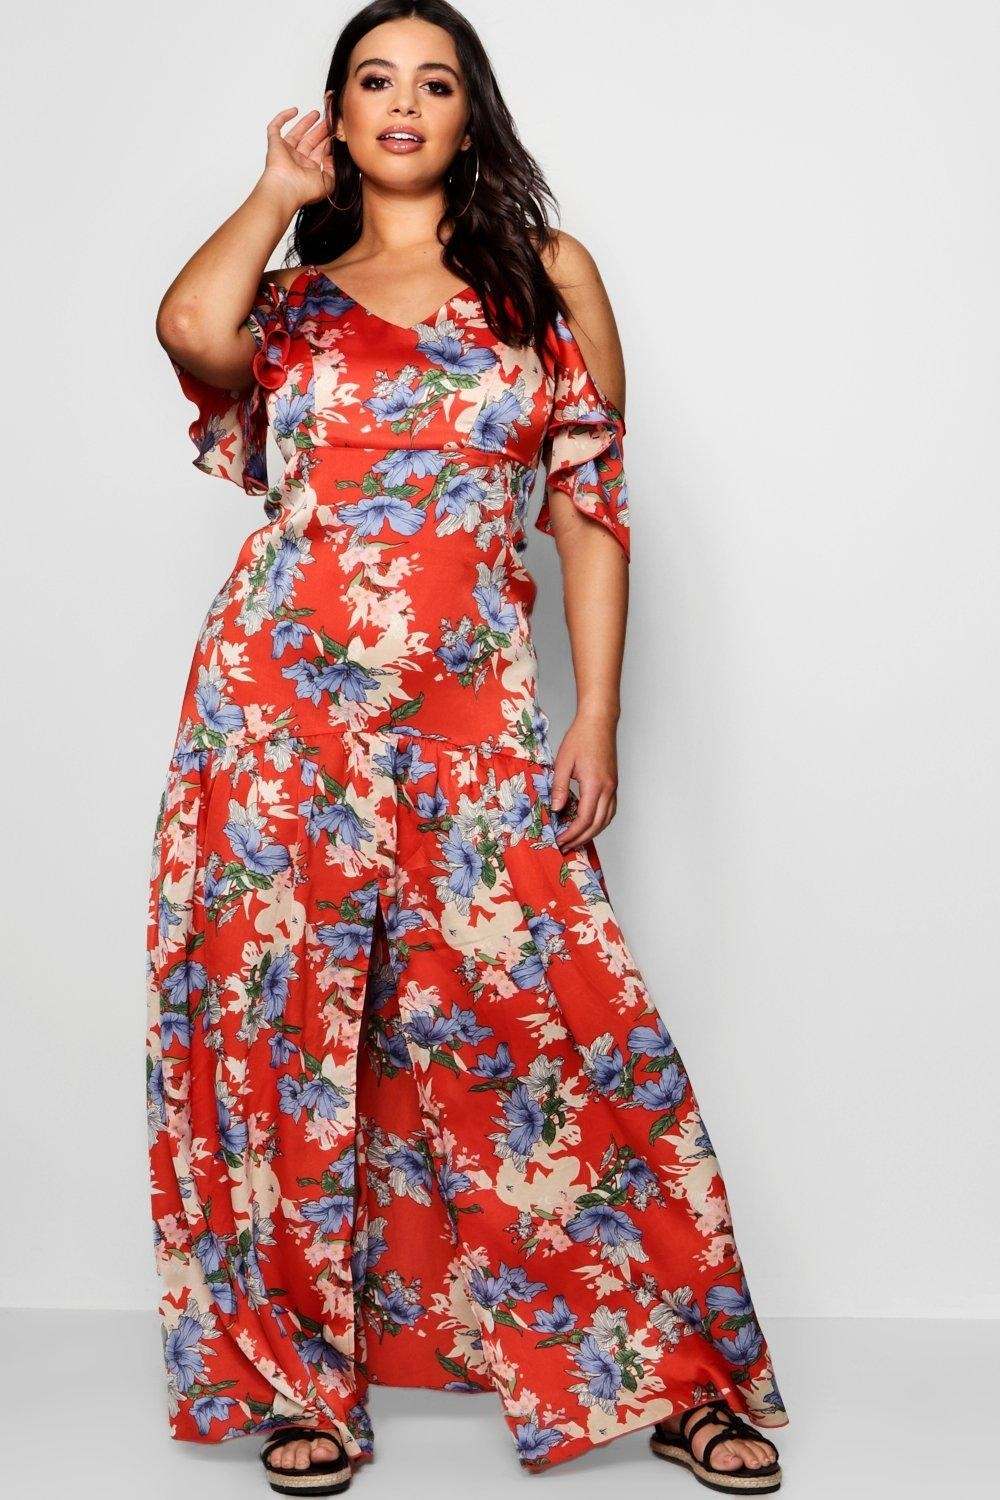 Price: $33 (originally $56, available in sizes 12–18)